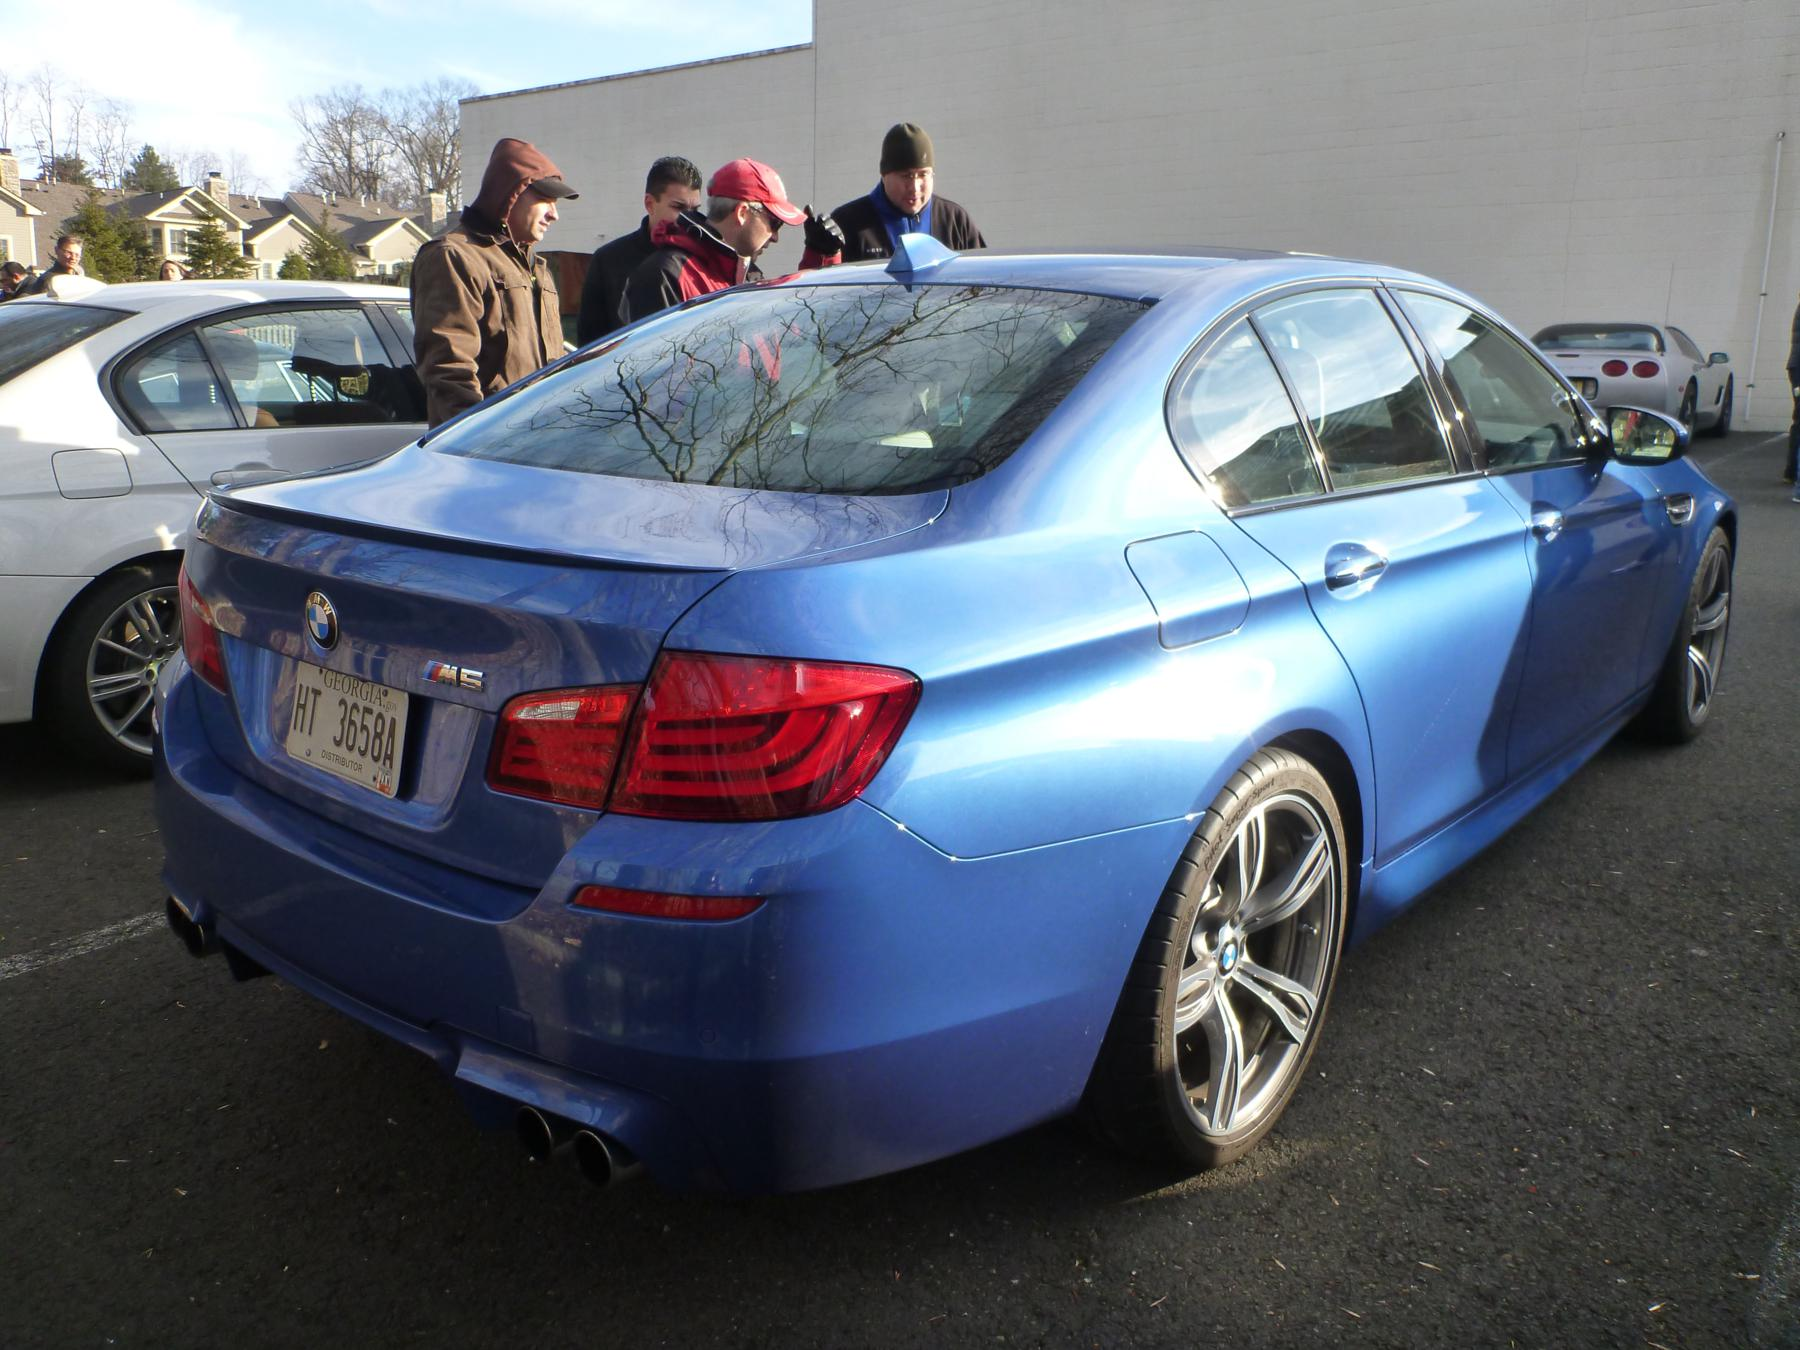 F10 M5 at NJ Cars and Coffee - 12/18/2011-12-18-2011-007_1800x1350.jpg